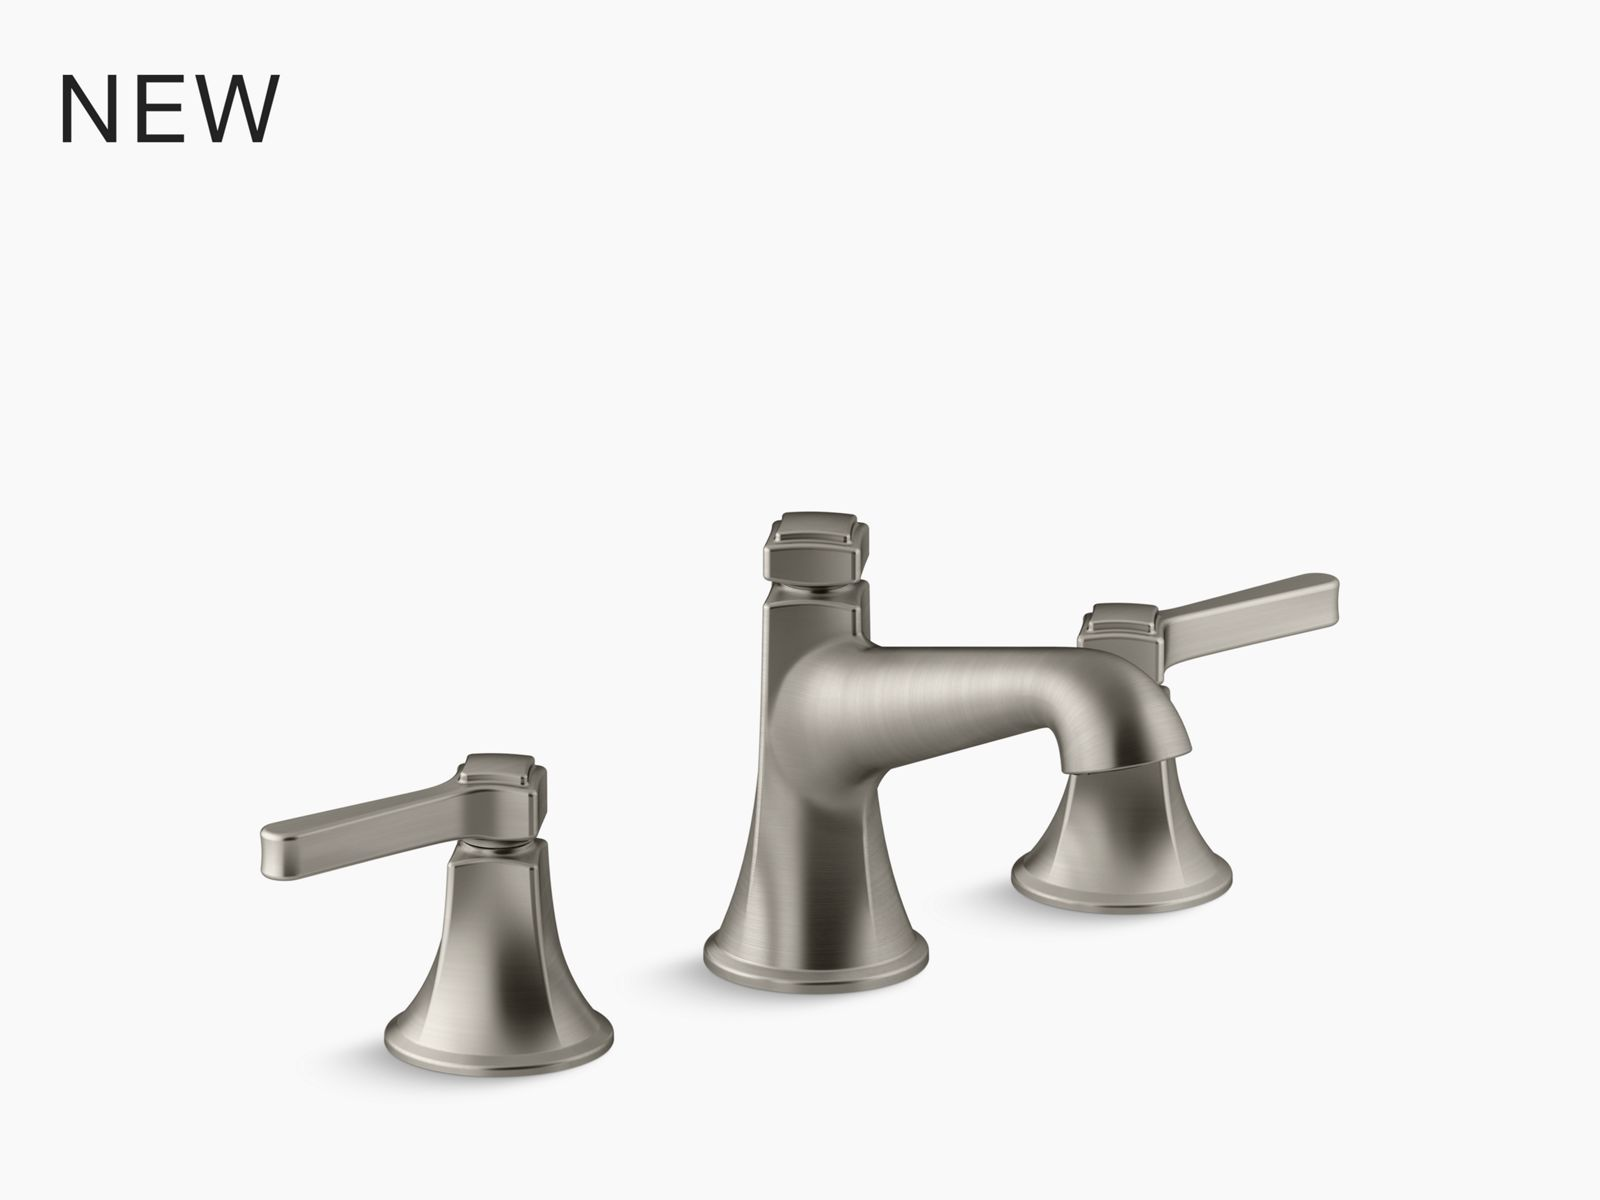 mistos 2 or 4 hole kitchen faucet with 10 swing spout and sidespray